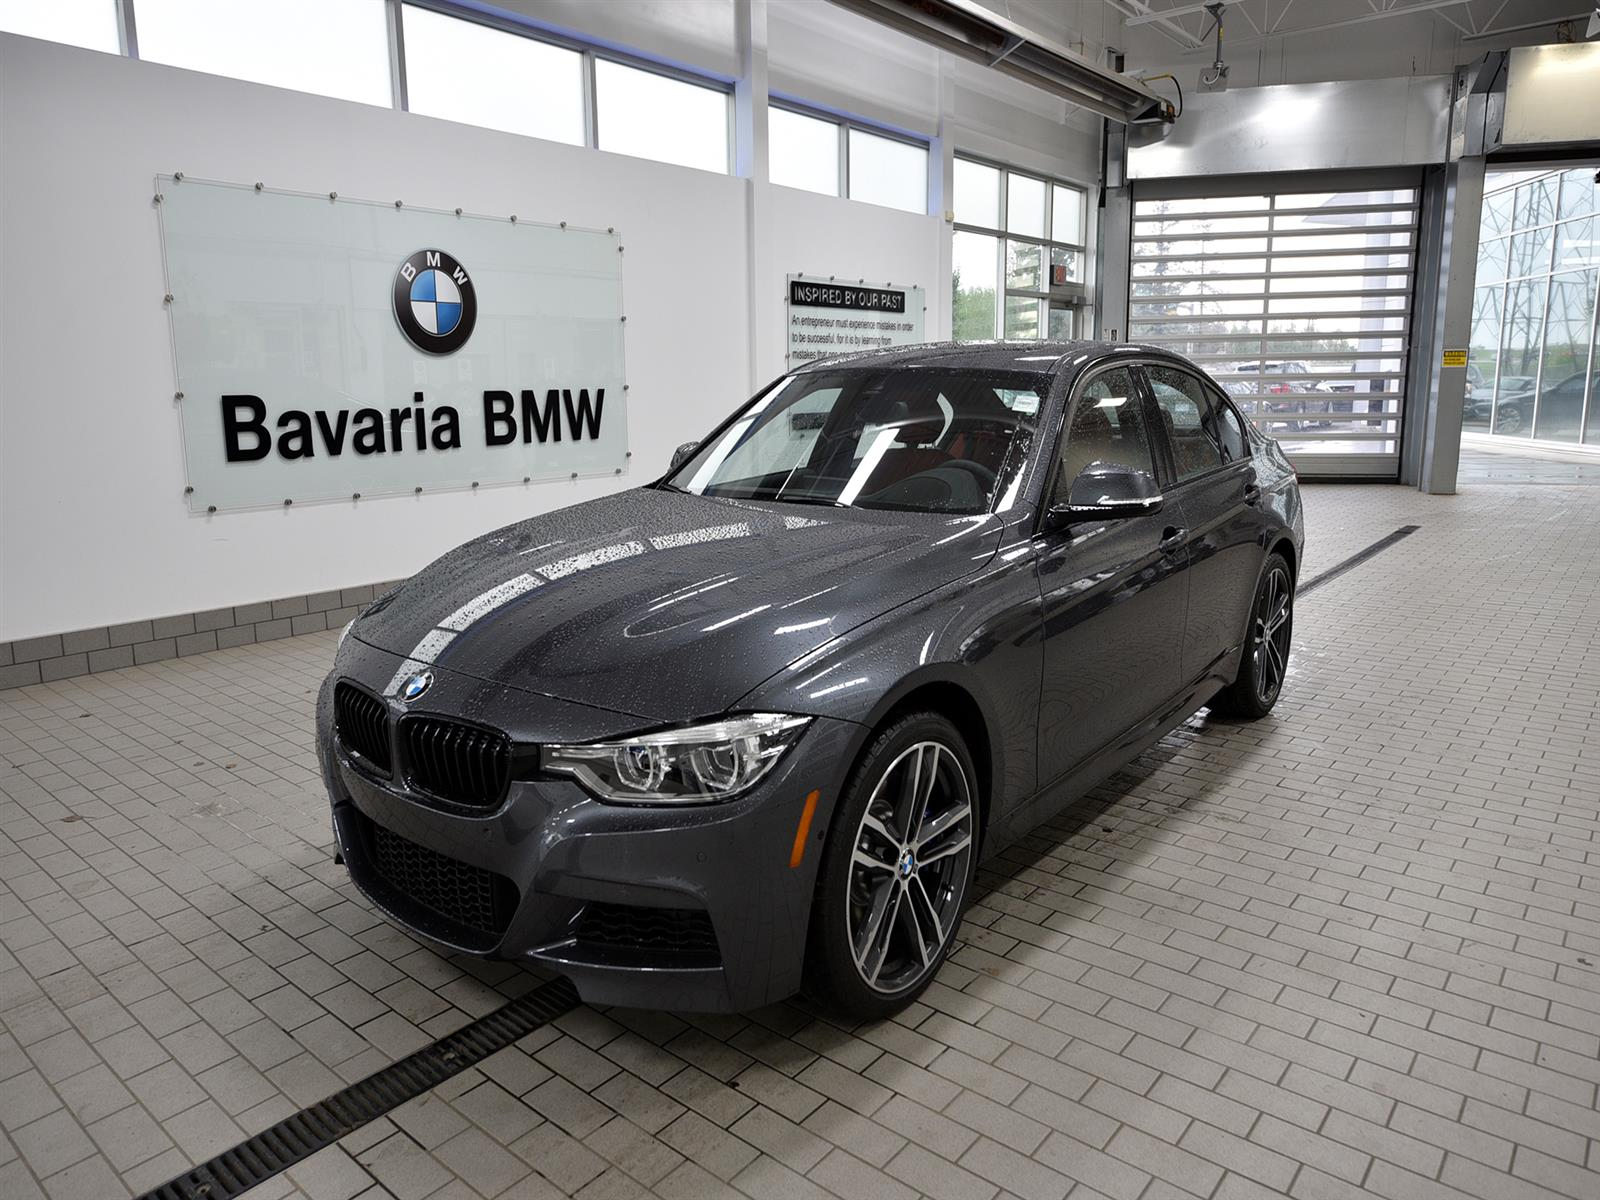 New 2018 Bmw 340i Xdrive Sedan In Edmonton 183s6495 Bavaria Auto Repair 735i 1986 Electrical